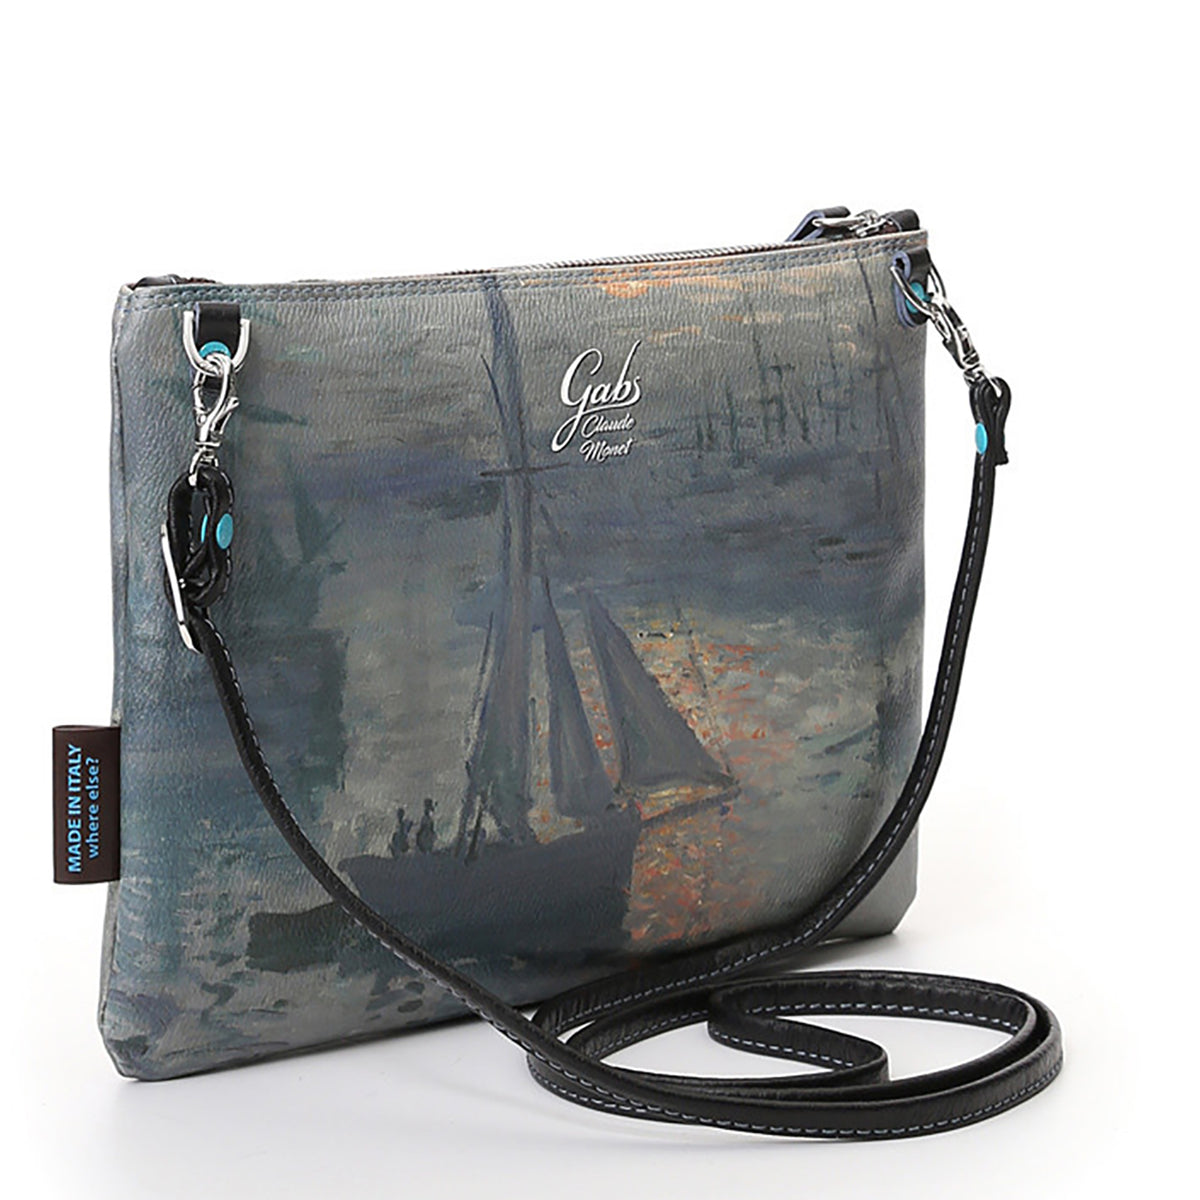 Clutch Bag featuring Monet's, Sunrise, by Gabs, Italy-Front/side View | Getty Store